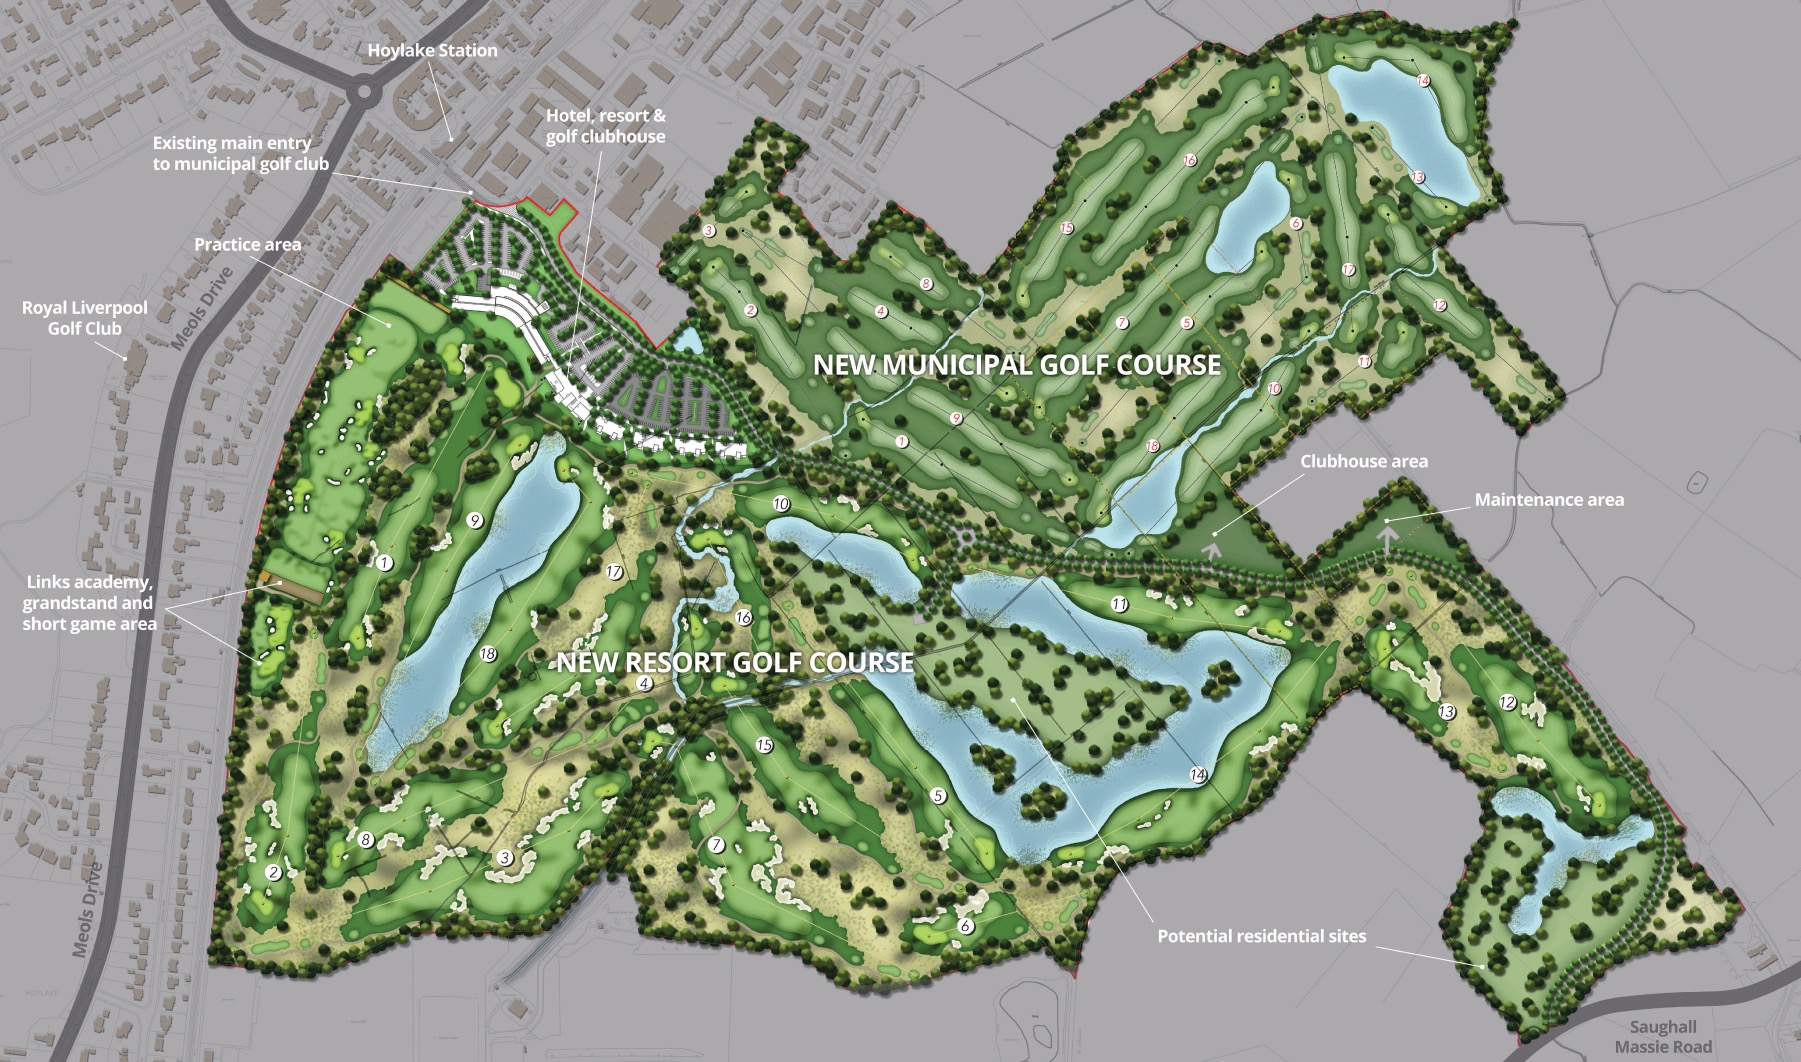 Golf resort proposals plan